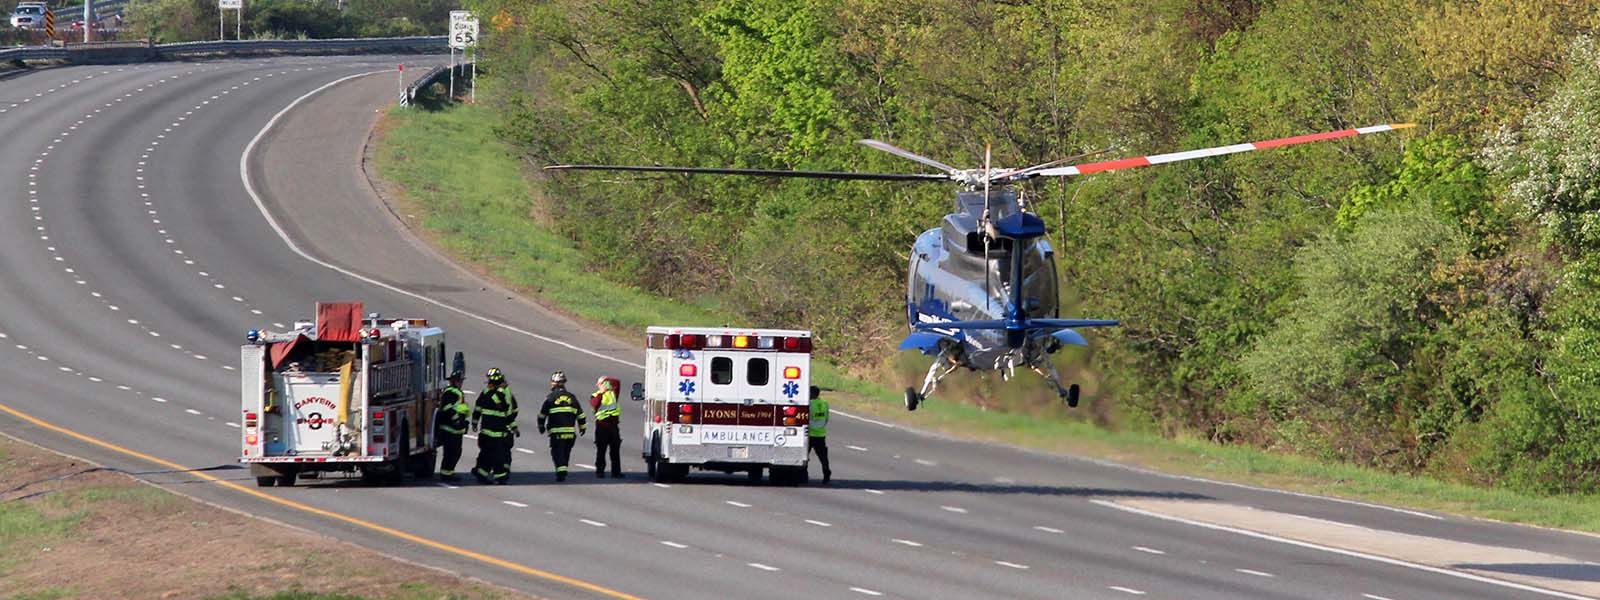 Medflight-RT95